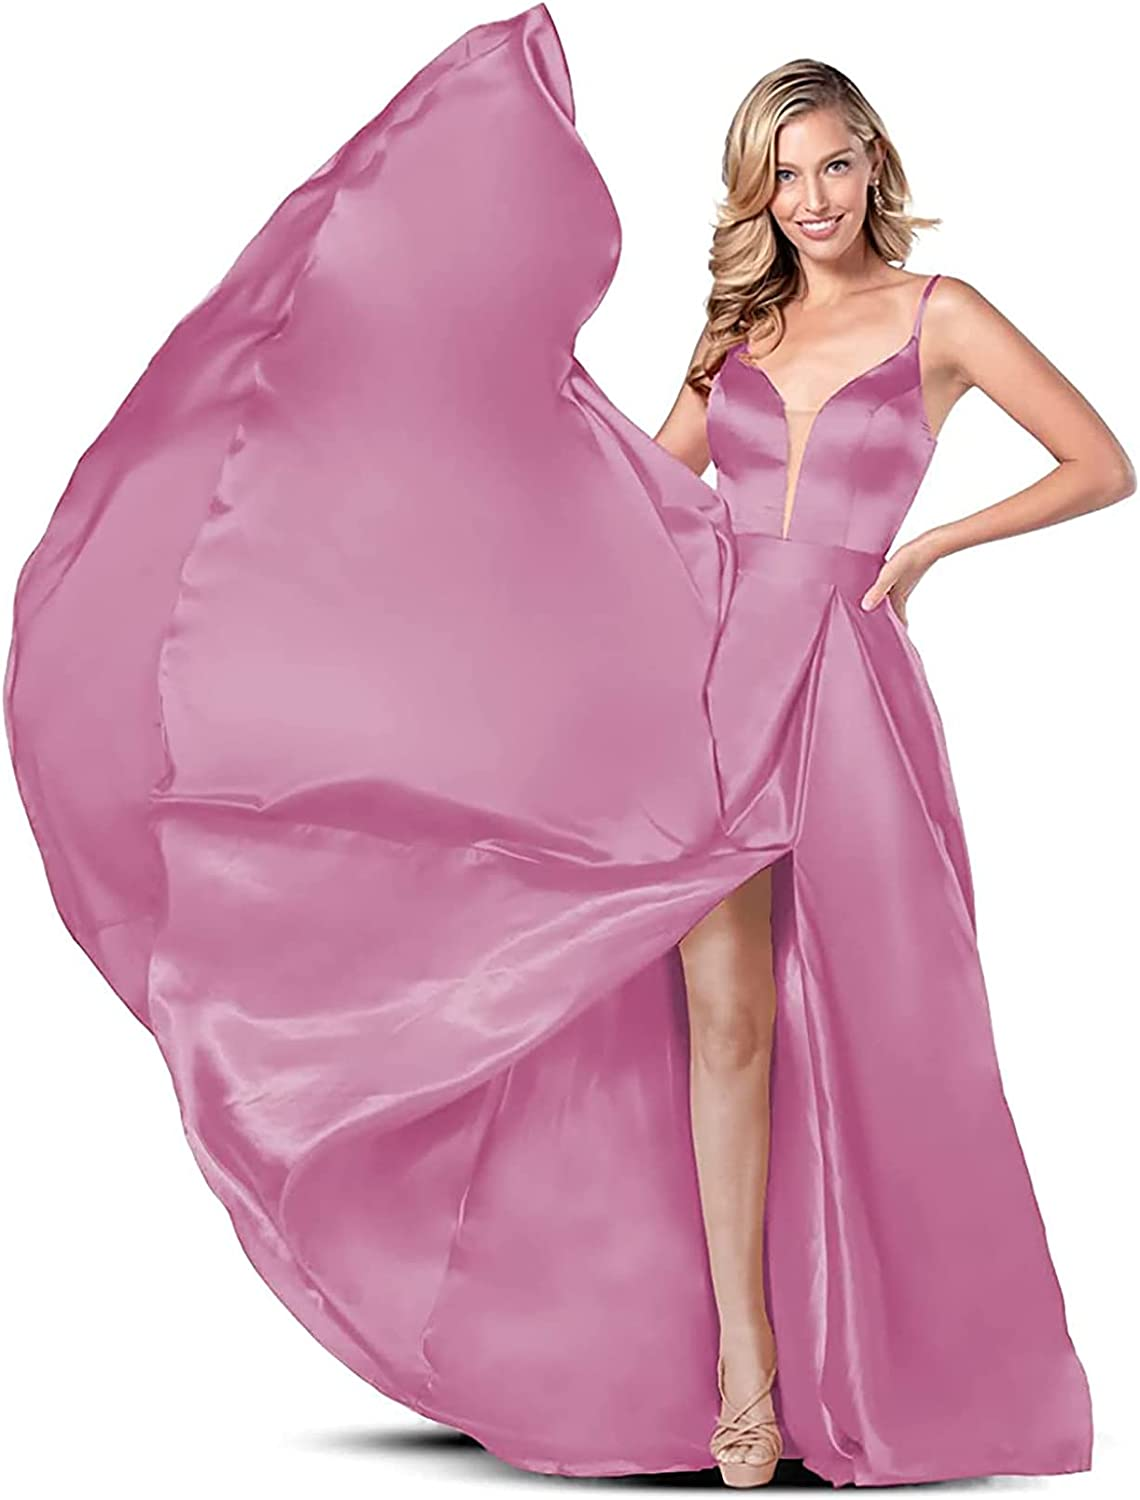 Women's Illusion Satin Prom Dresses Side Slit Formal Evening Dresses Party Gowns Long A Line with Pockets